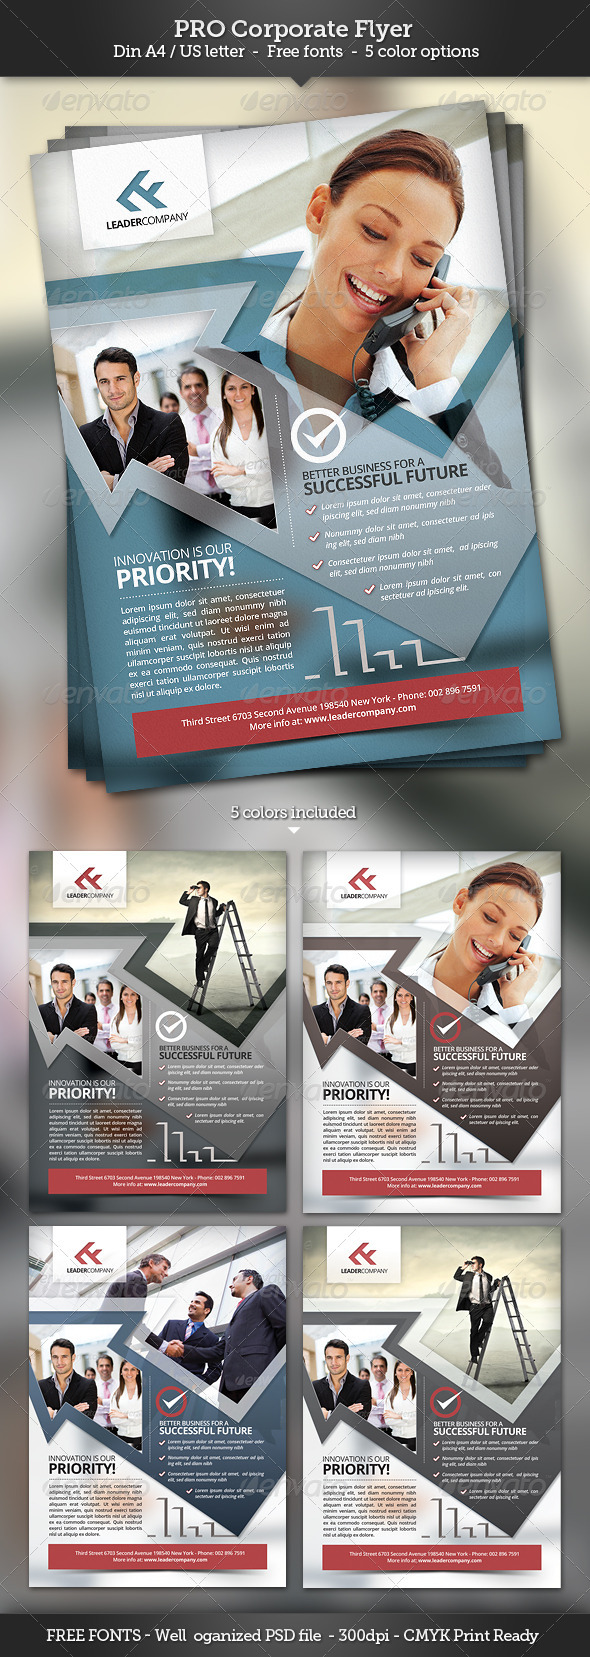 Pro Corporate Flyer Template - Corporate Flyers